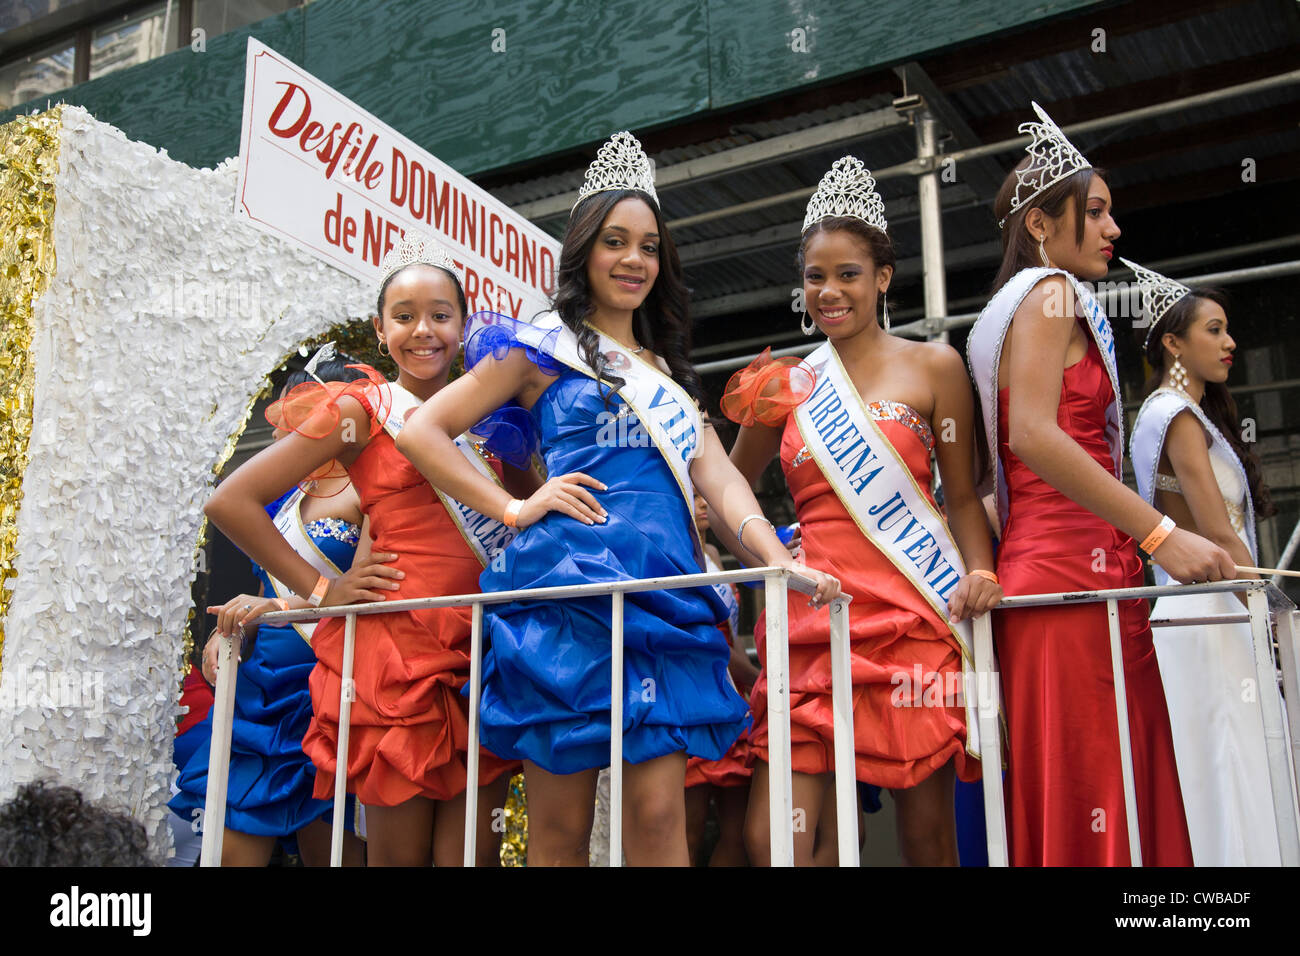 A group of young Dominican Princesses ready to ride a float up the Avenue of the Americas at the Dominican Day Parade - Stock Image